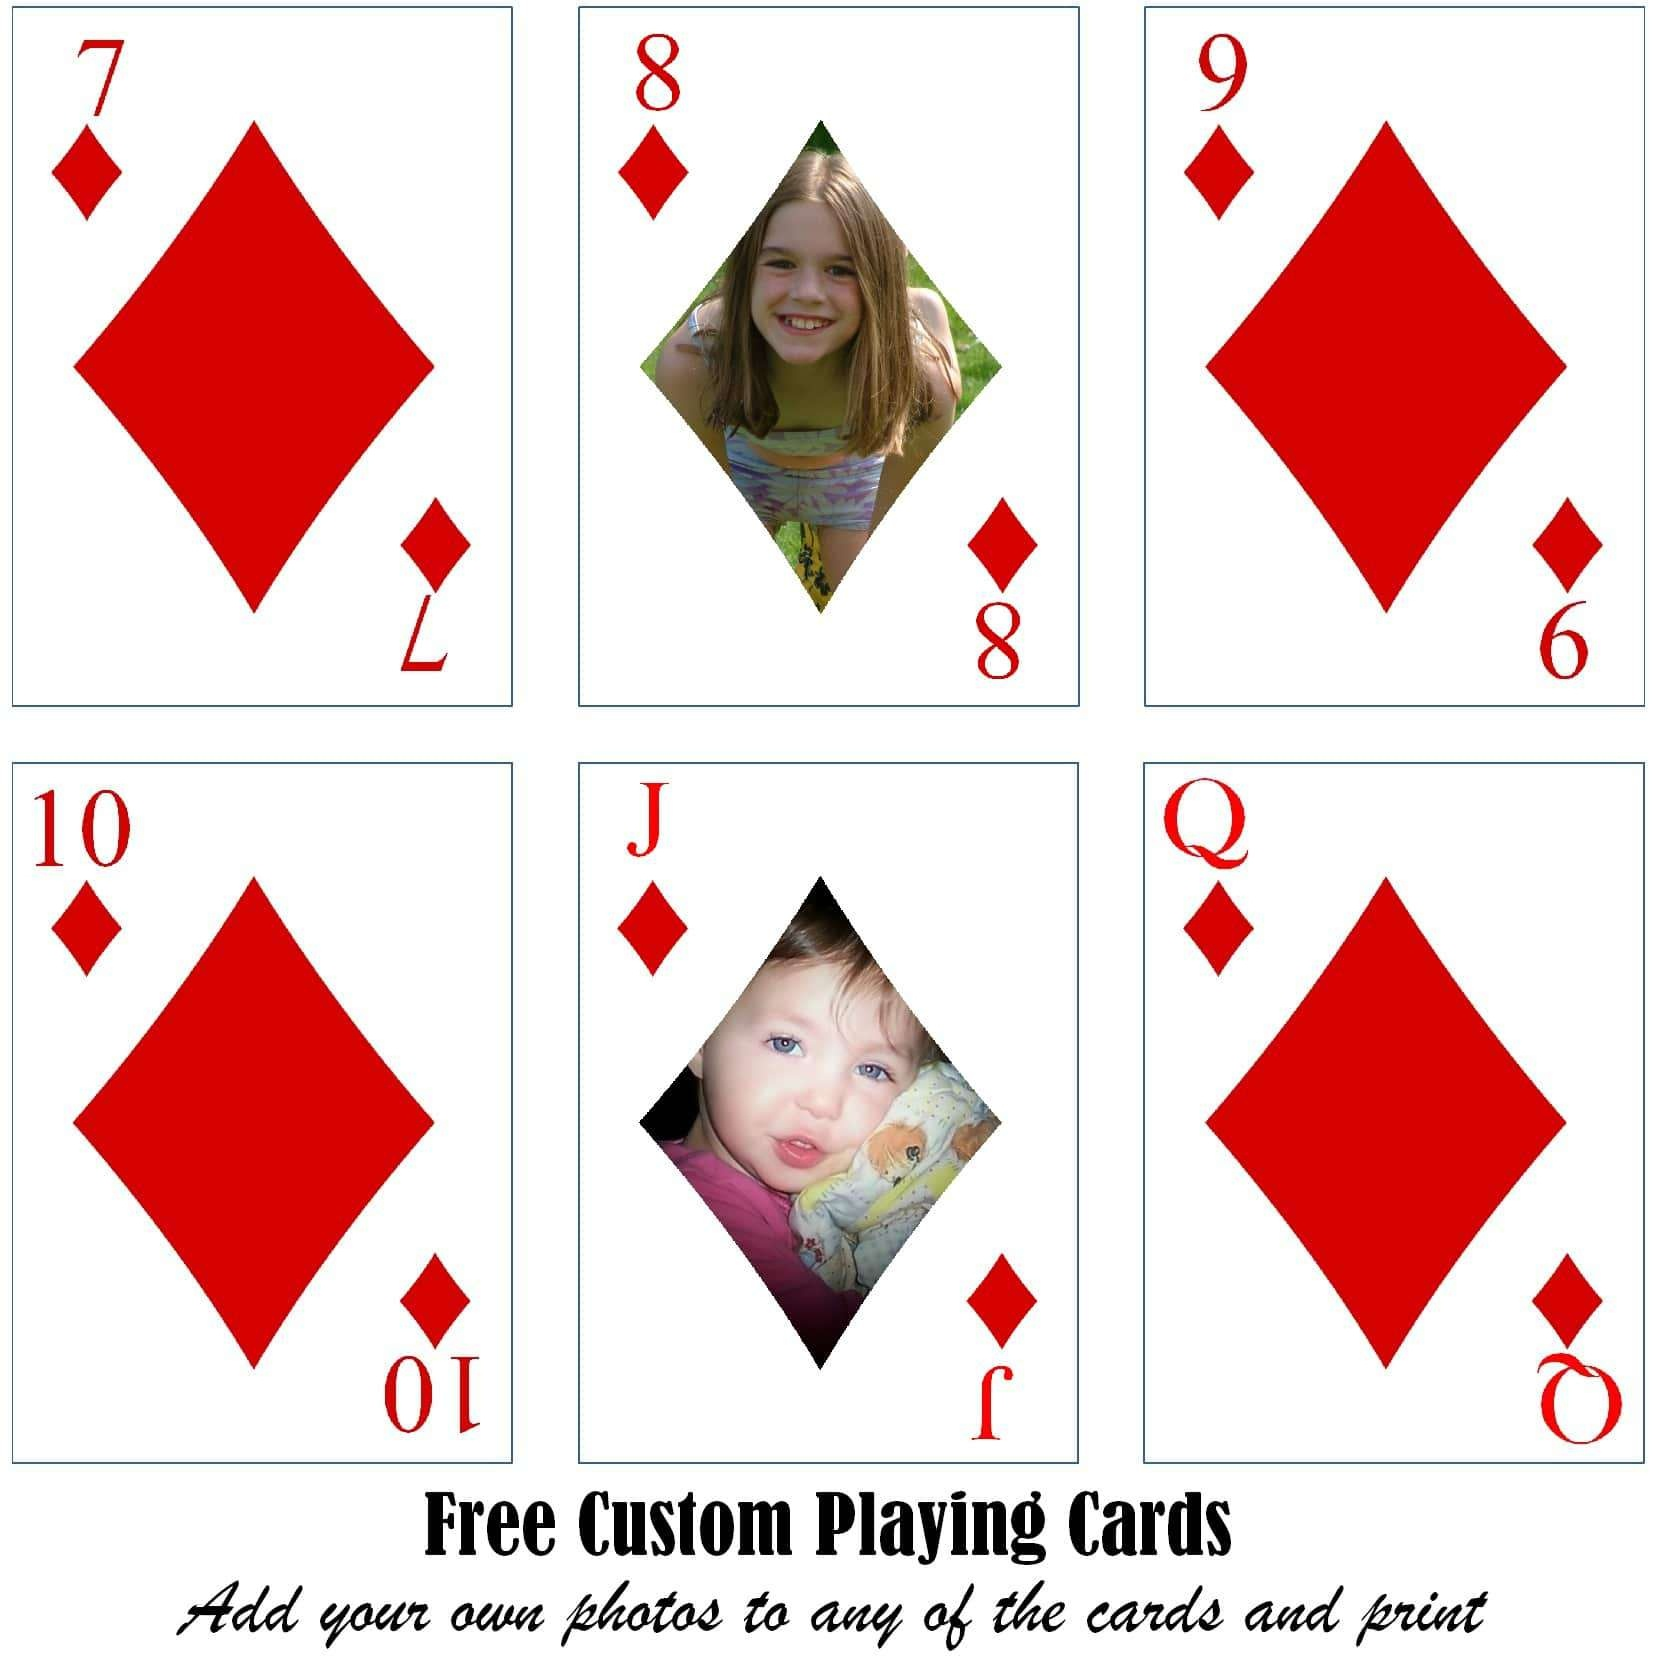 Free Printable Custom Playing Cards | Add Your Photo And/or Text - Free Printable Deck Of Cards